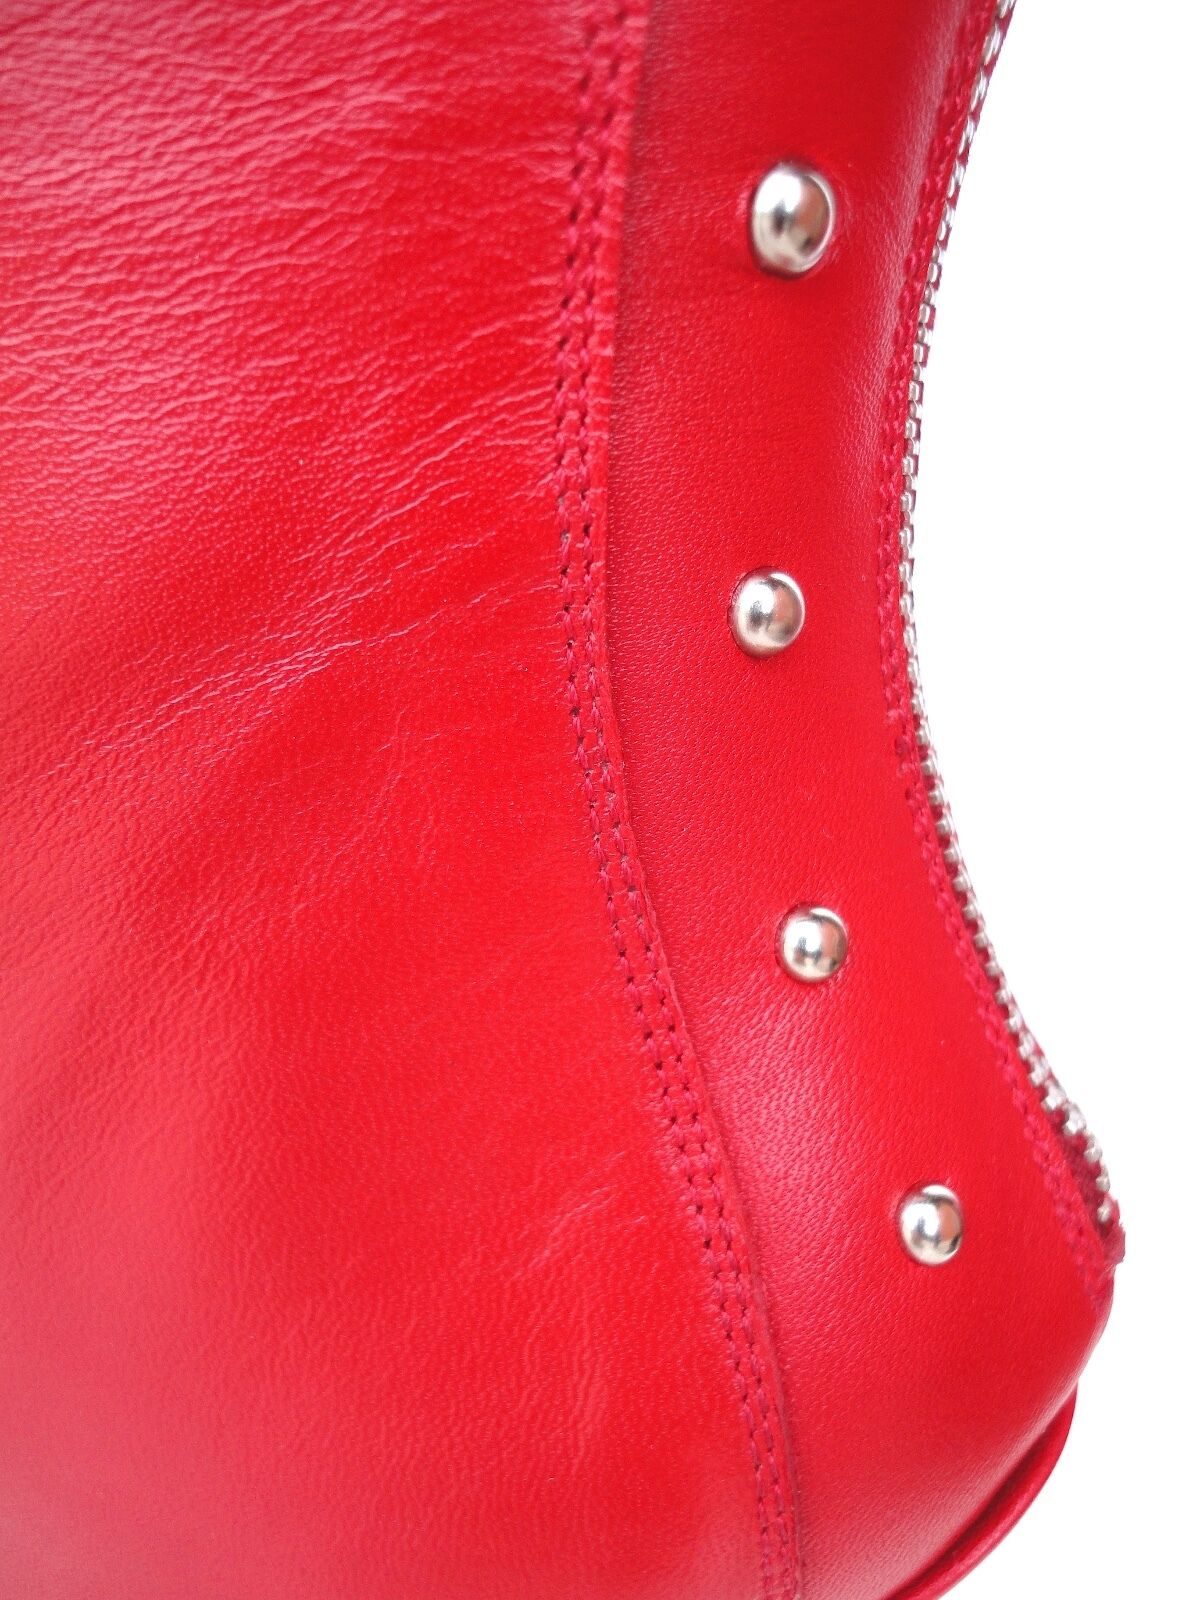 CQ COUTURE OVERKNEE EXTREME HEEL BOOTS STIEFEL LEATHER REIßVERSCHLUSS red red red 37 3b26a5